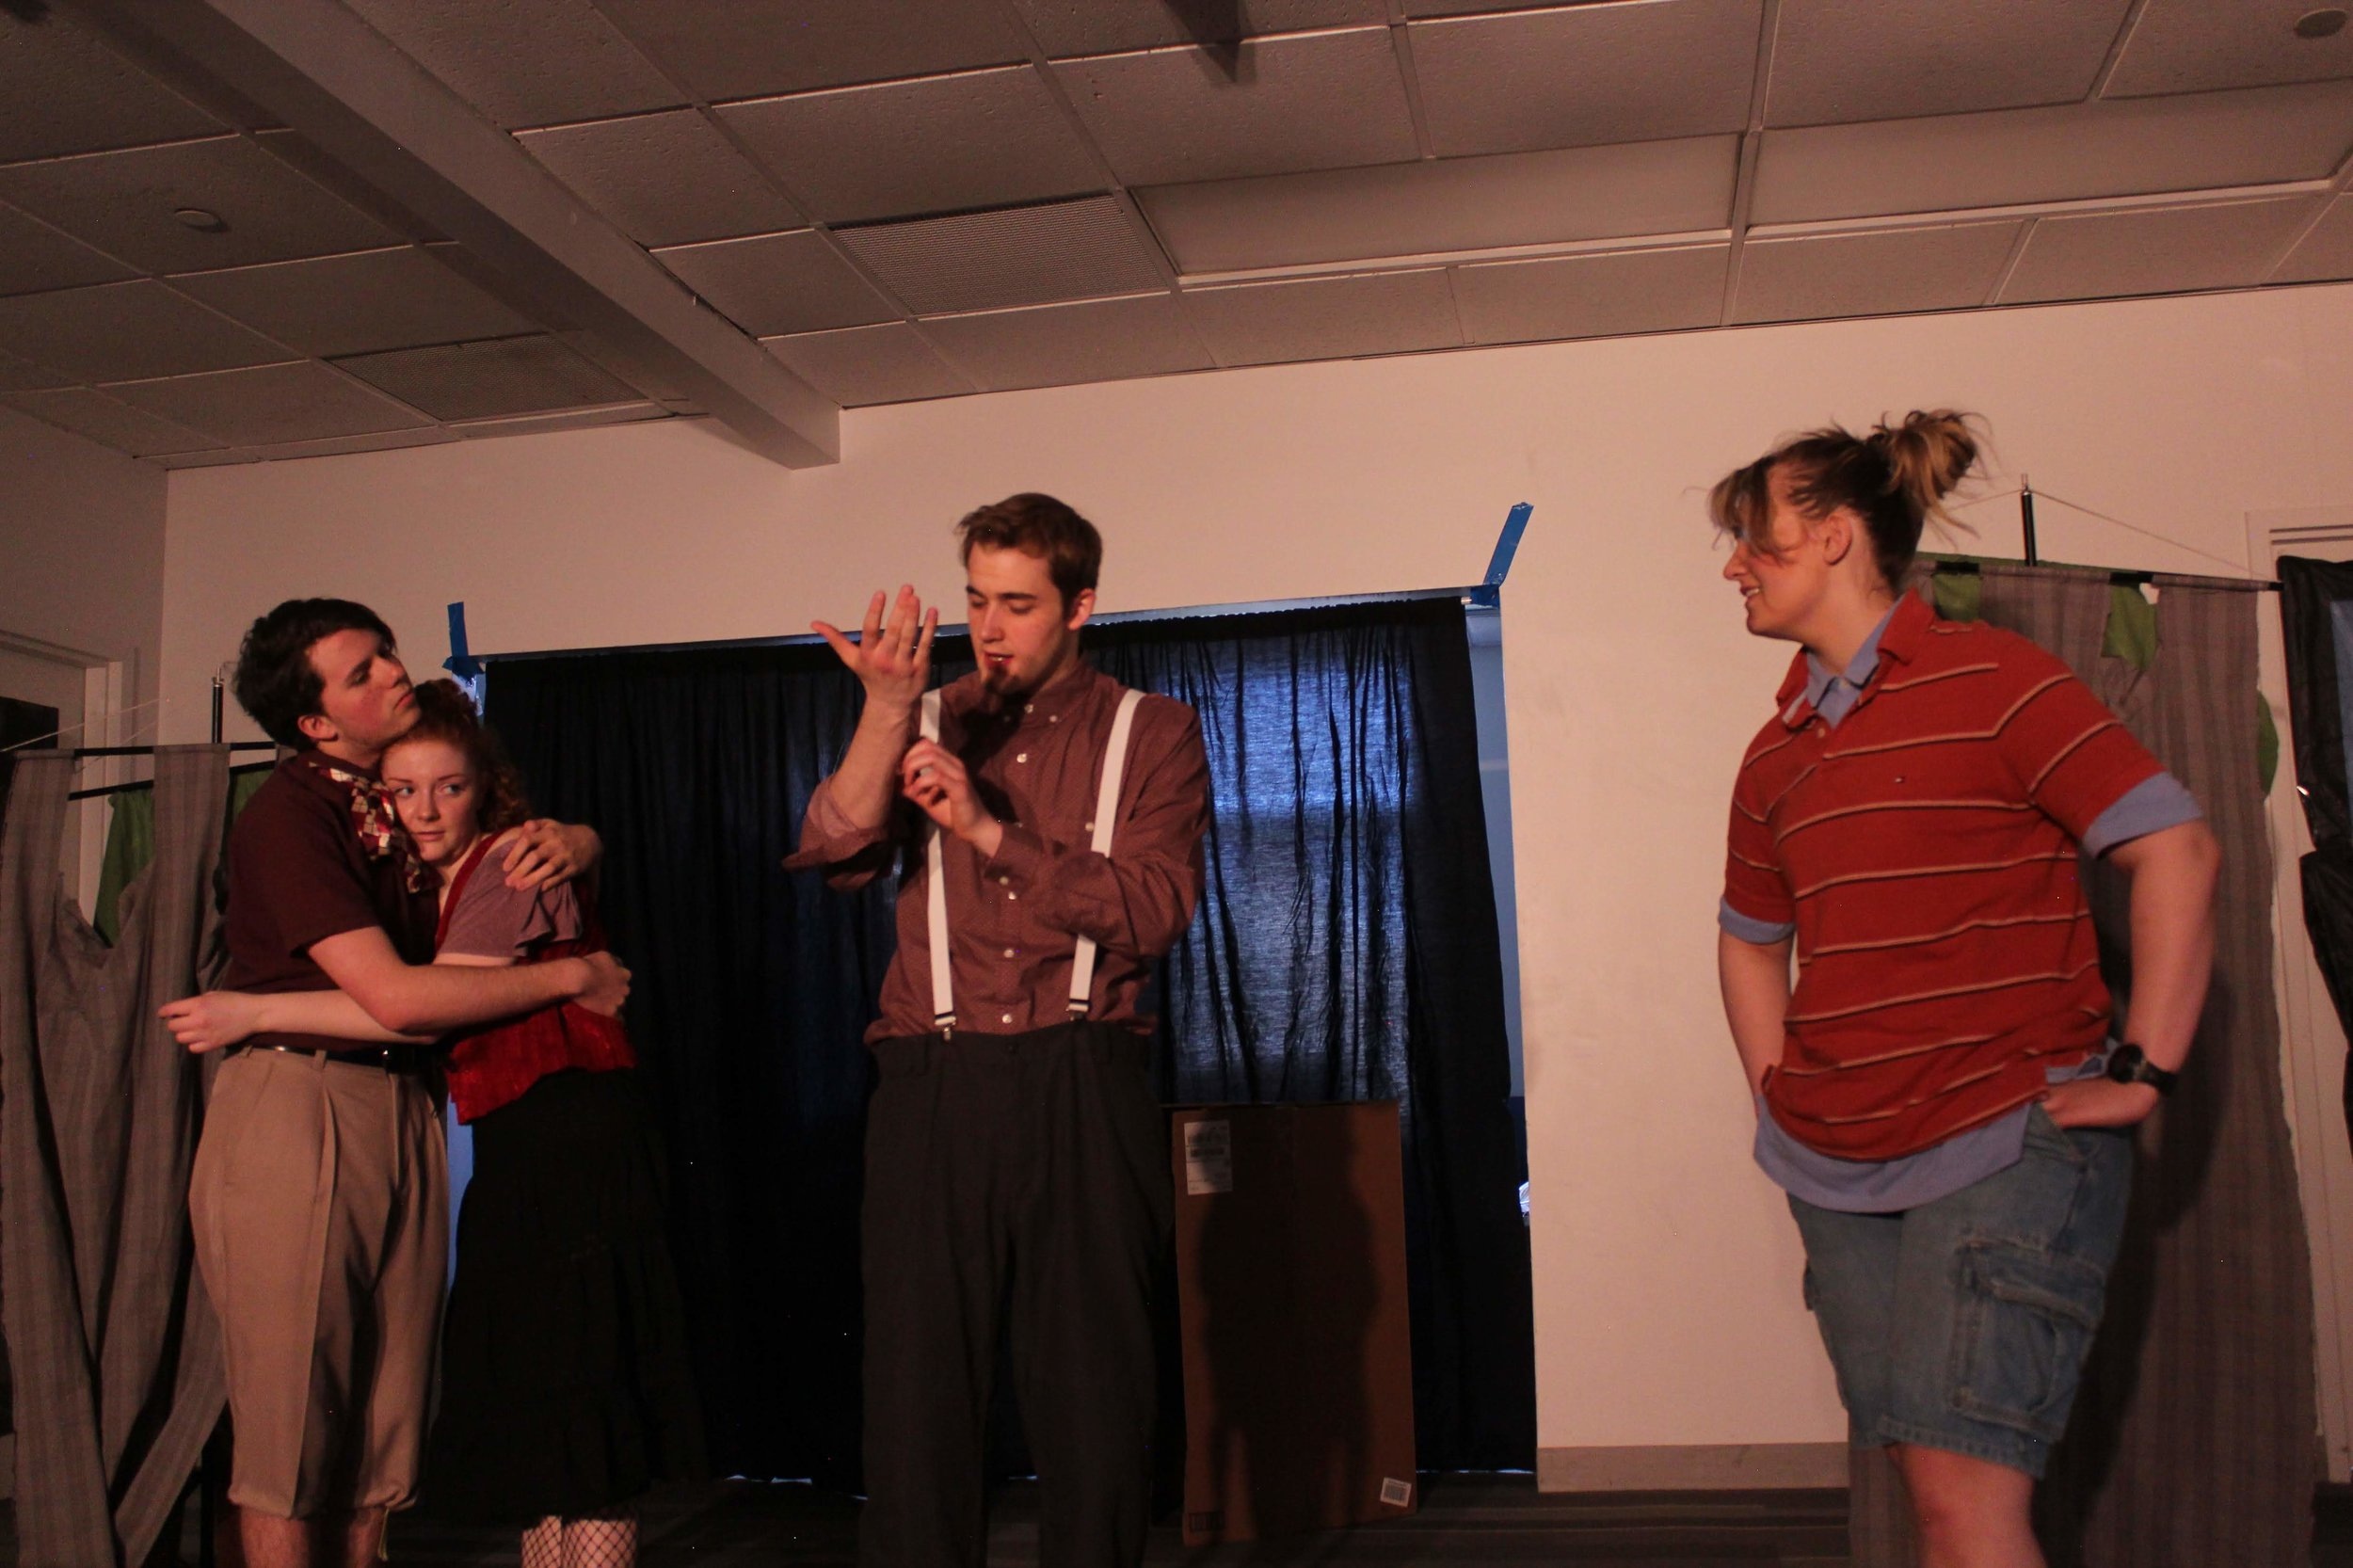 "(L to R) Colby Ourand, Leah Sandow, Jason Schlaman, and Sophia Carlin in ""Knight of the Burning Pestle"""